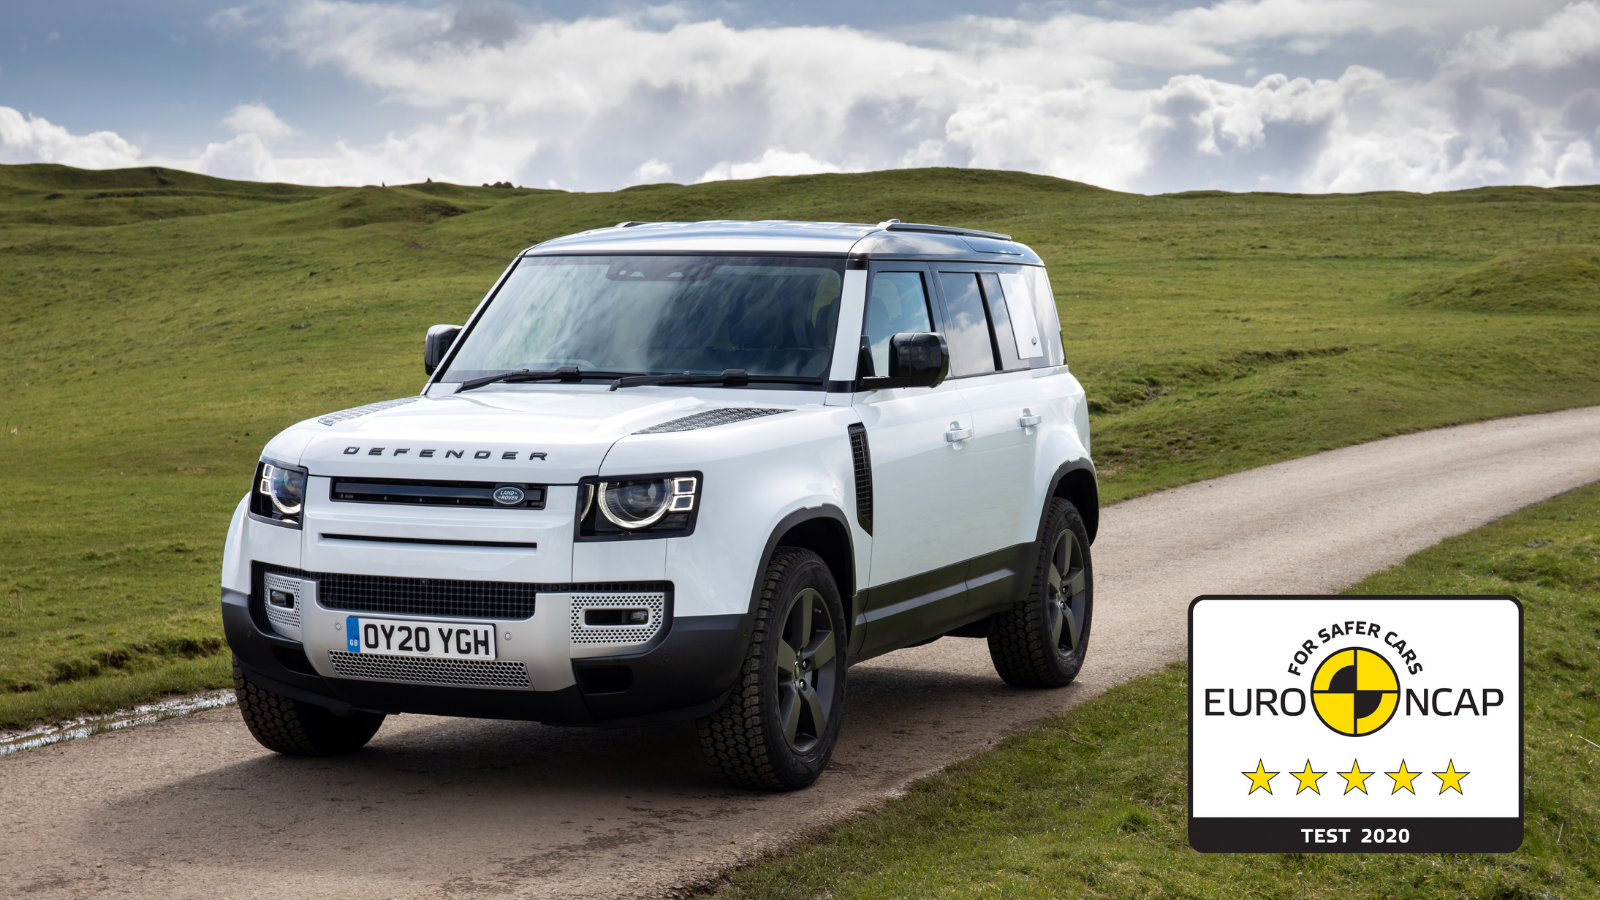 FIVE-STAR EURO NCAP SAFETY RATING FOR AWARD-WINNING NEW DEFENDER 110